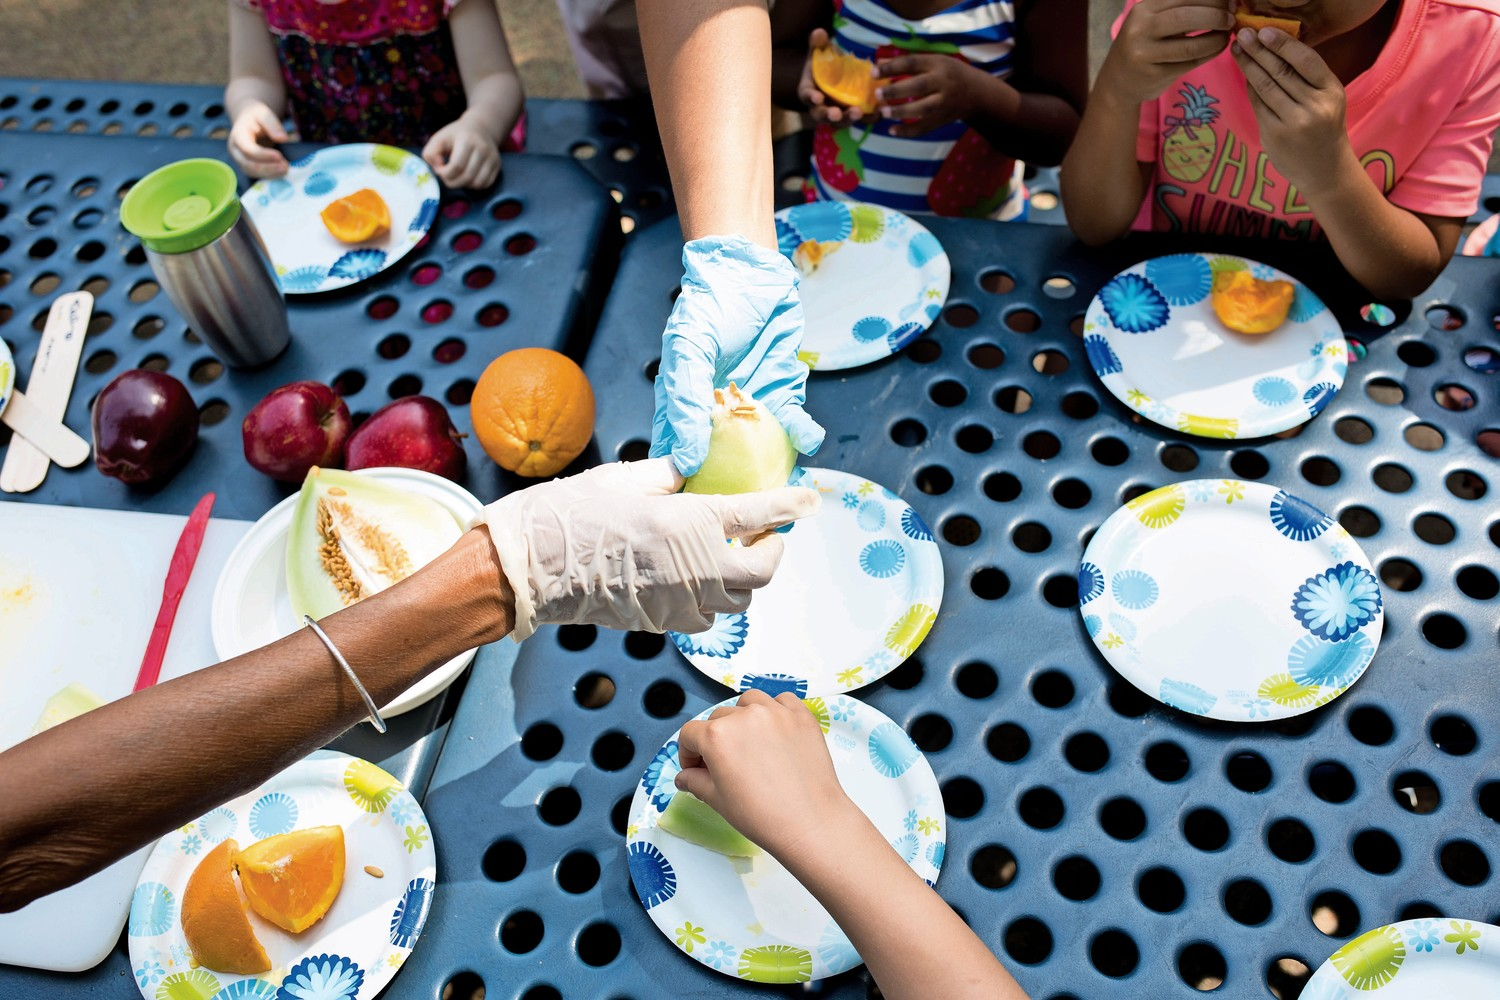 Teachers At Riverdale Presbyterian Church Nursery School P Around Pieces Of Fruit For Students To Eat